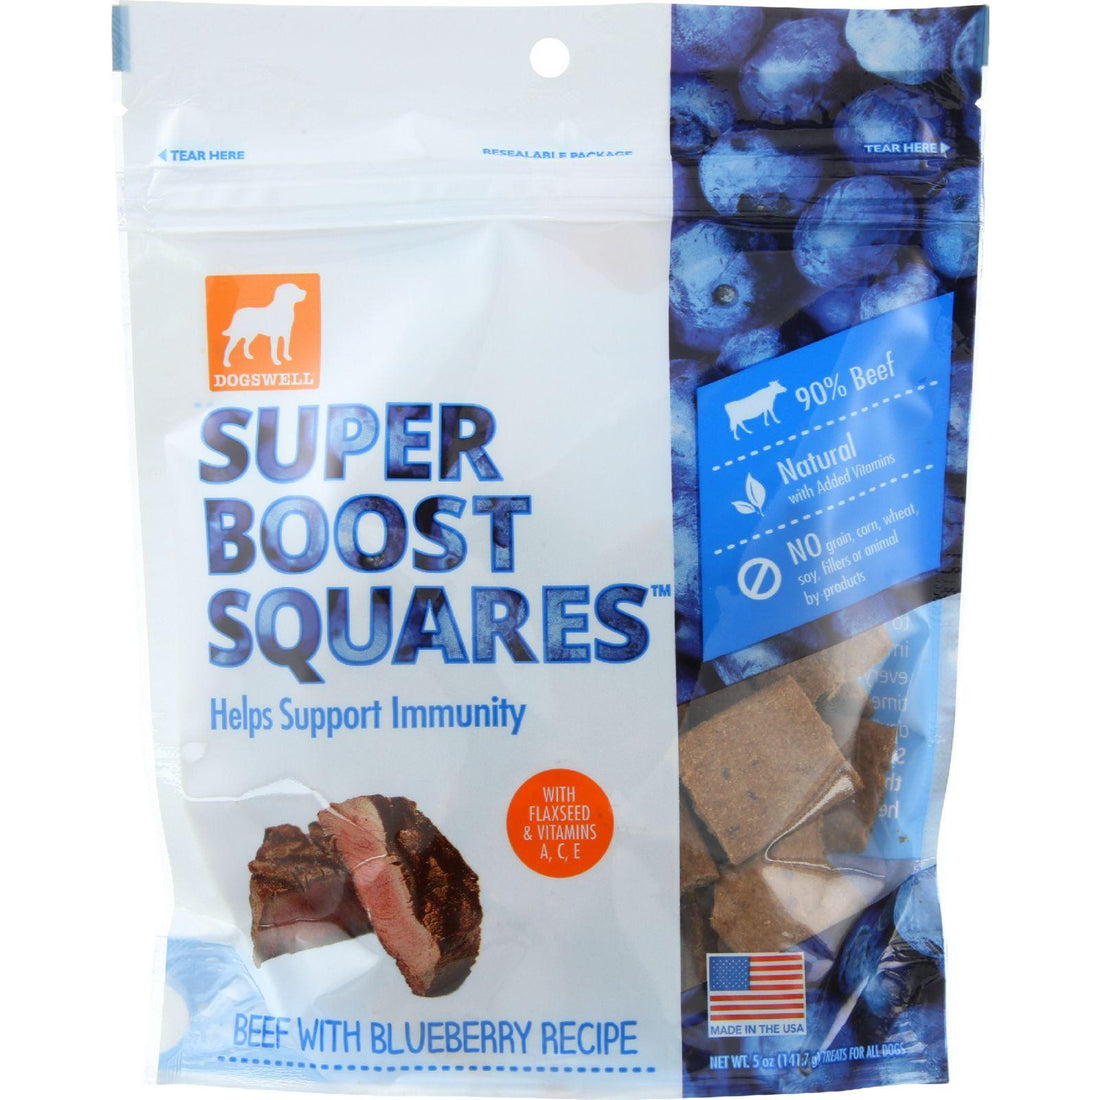 Mother Mantis: Dogswell Dog Treats - Super Boost Squares - Immunity - Beef With Blueberry - 5 Oz - Case Of 12 Dogswell